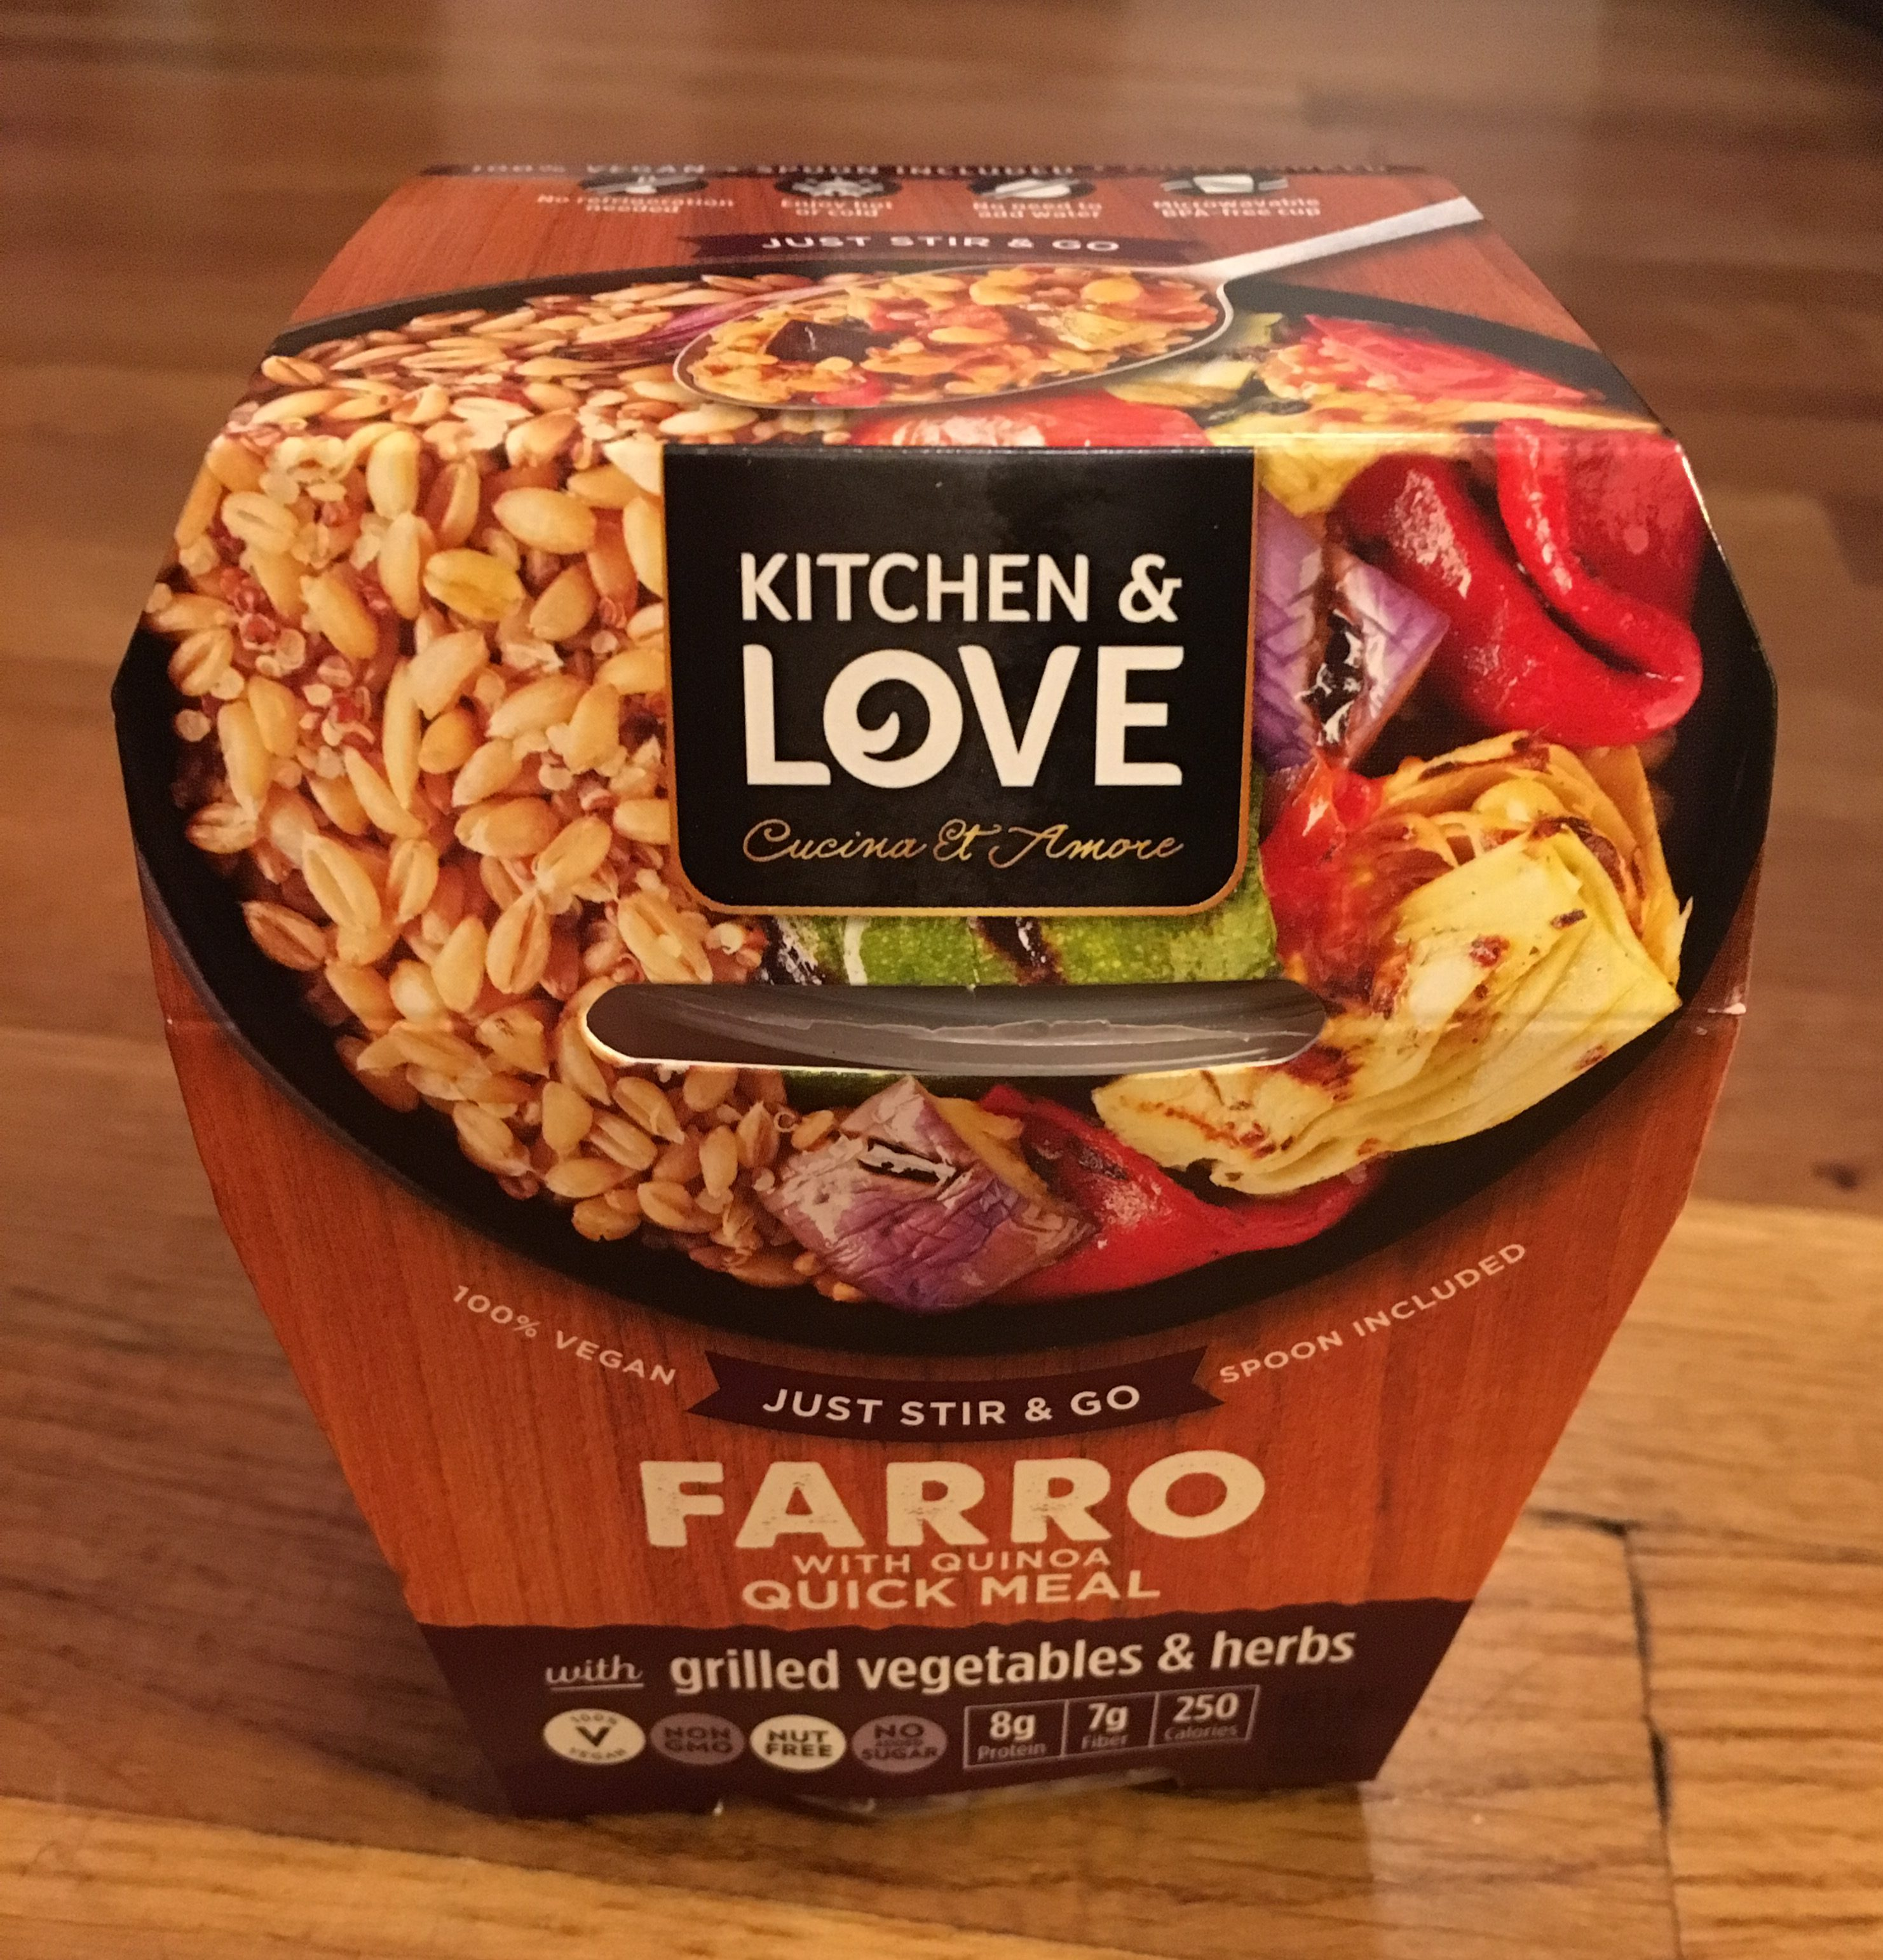 Cucina And Amore Quinoa Review Product Review Cucina Amore Ready To Eat Farro Meals The